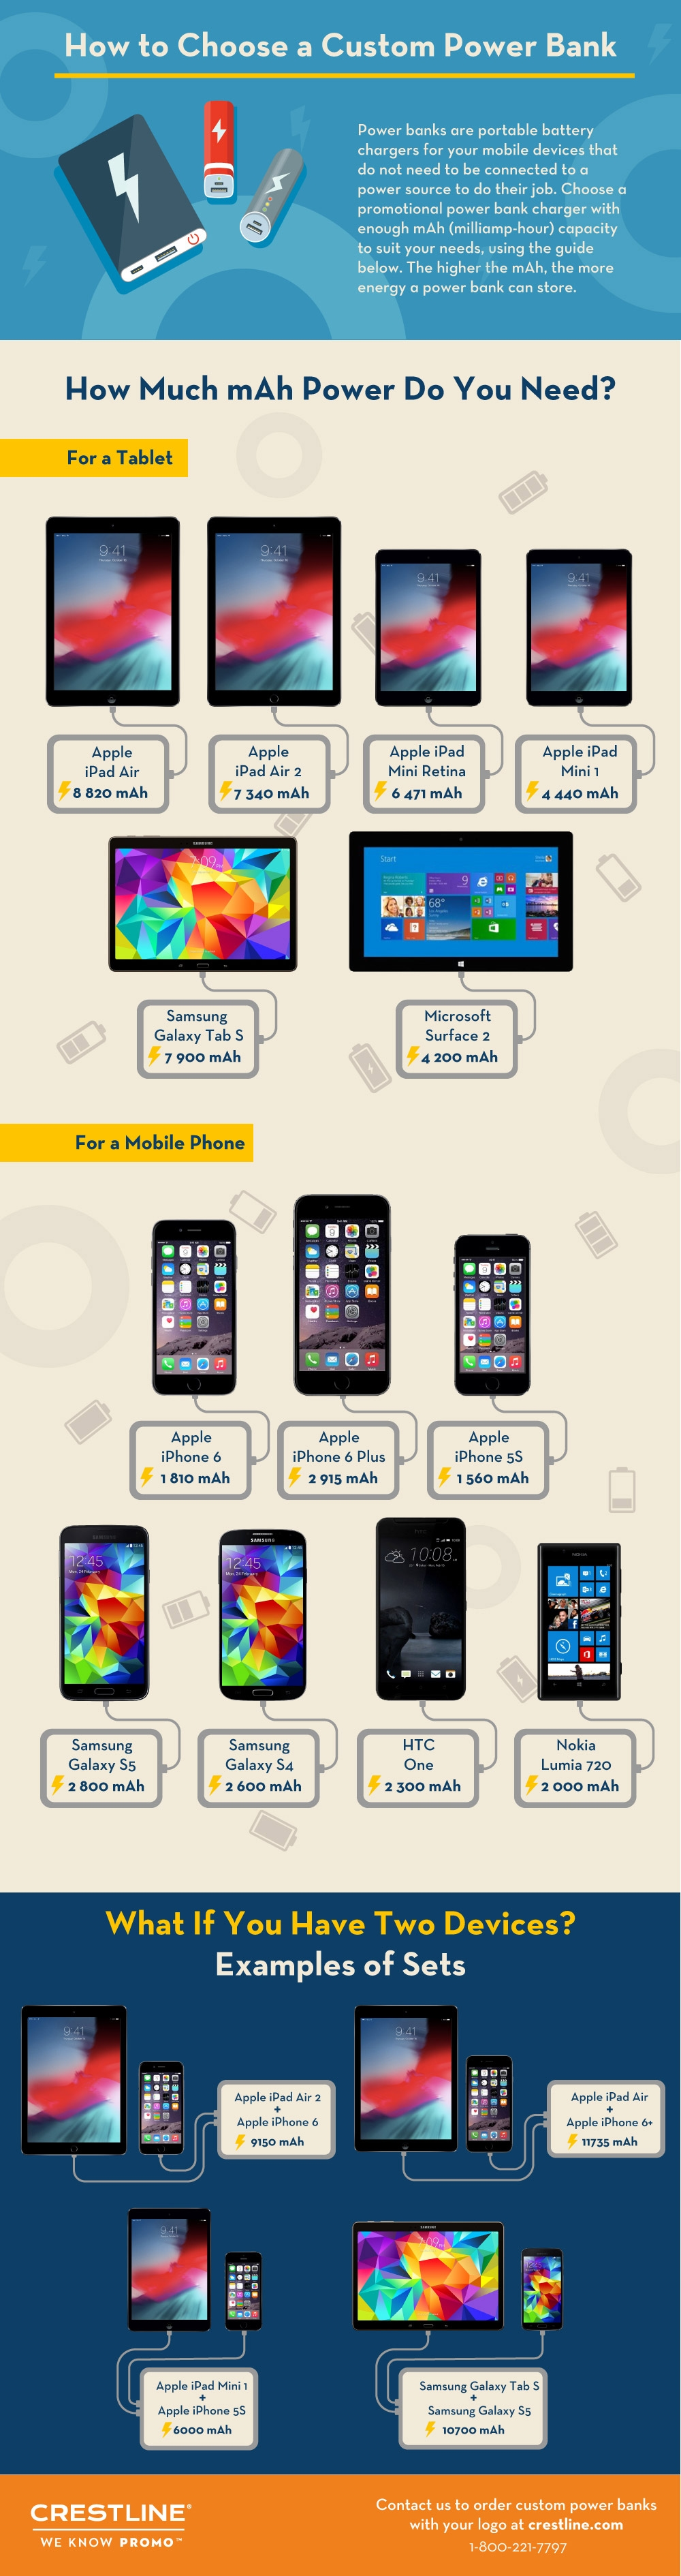 power bank infographic